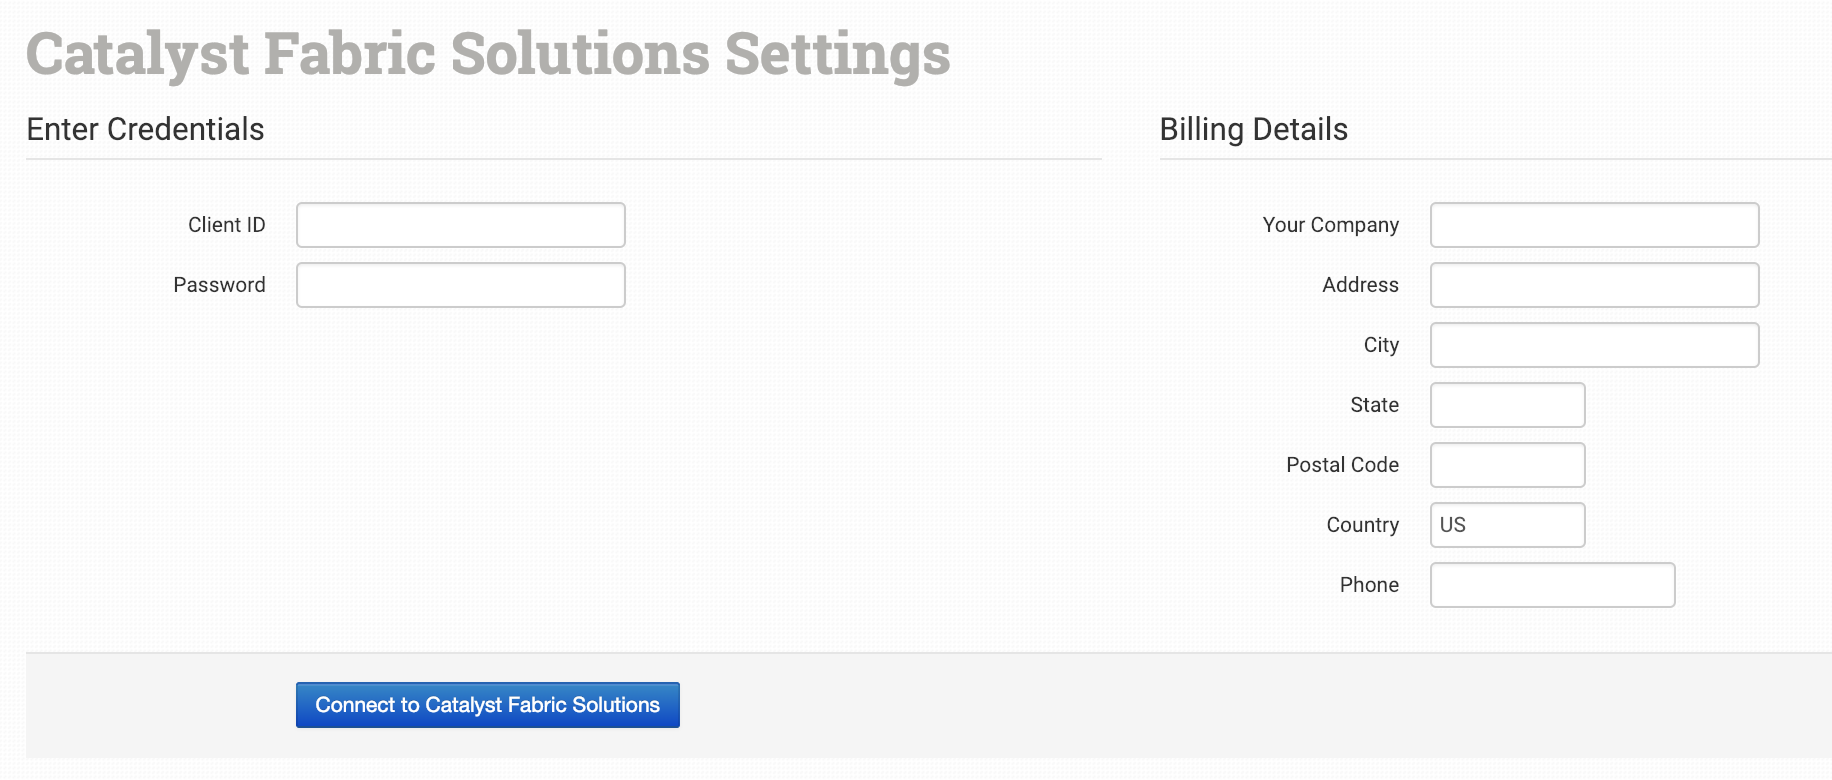 Catalyst Fabric Solutions Integration - Order Desk Help Site